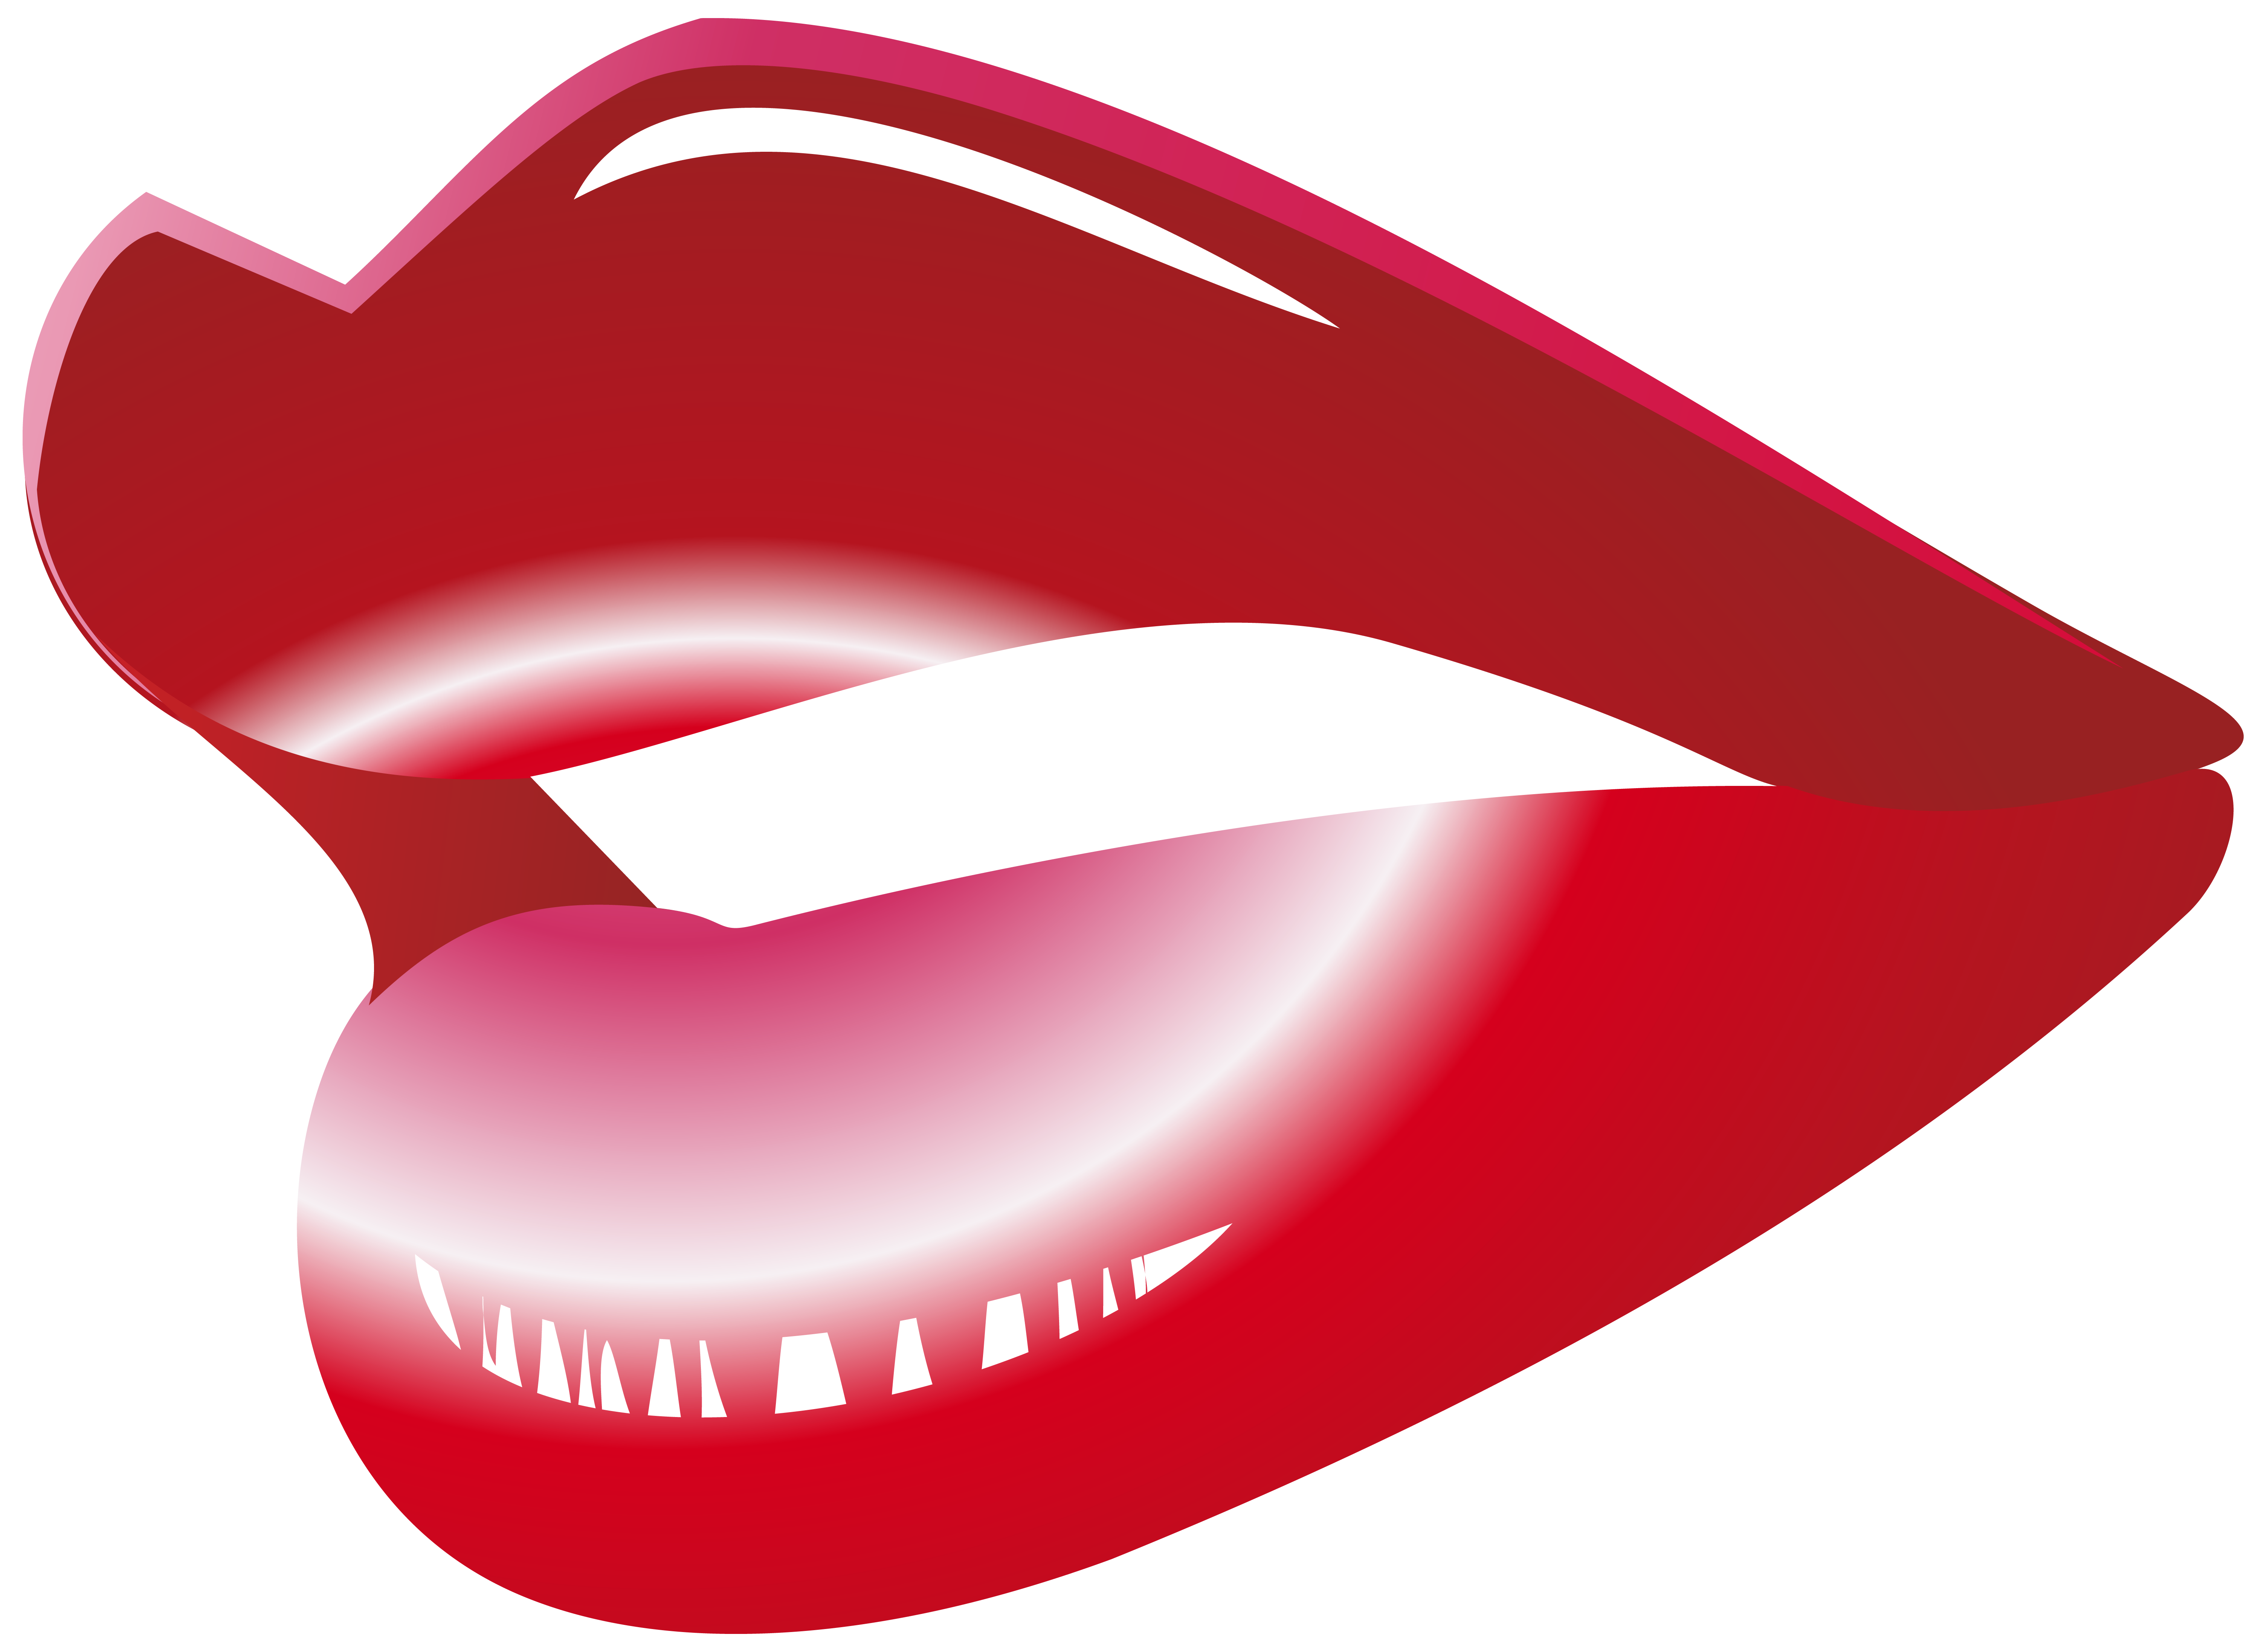 Red mouth png clip. Lips clipart nose